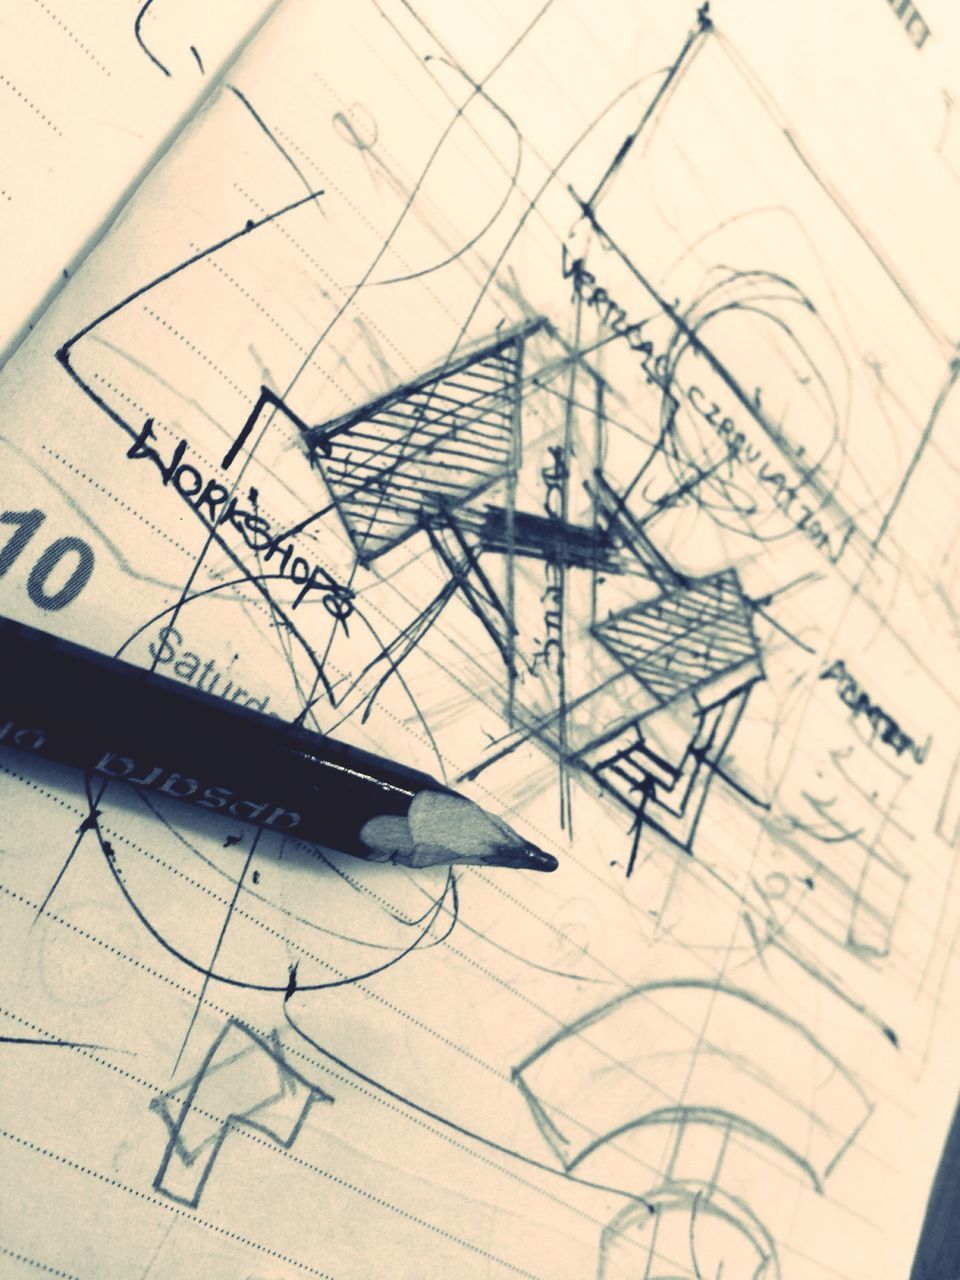 plan, blueprint, paper, sketch, design, accuracy, instrument of measurement, geometry, planning, working, ruler, diagram, measuring, pattern, work tool, backgrounds, industry, architecture, technology, occupation, no people, close-up, chart